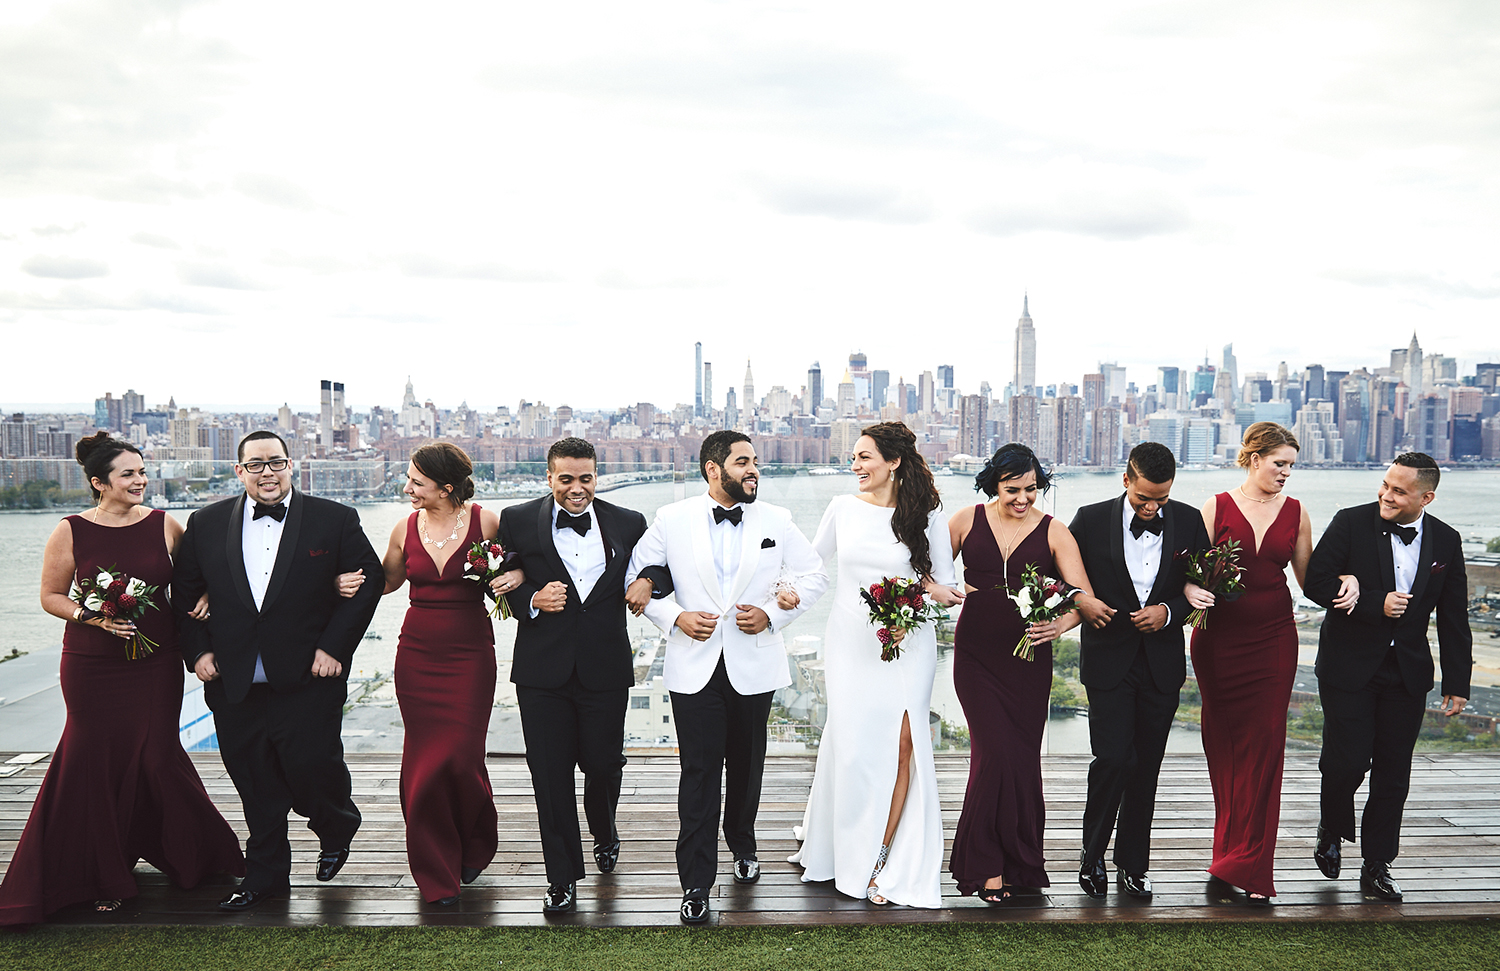 170930_WilliamValeWeddingPhotography_BrooklynWeddingPhotographer_By_BriJohnsonWeddings_0102.jpg